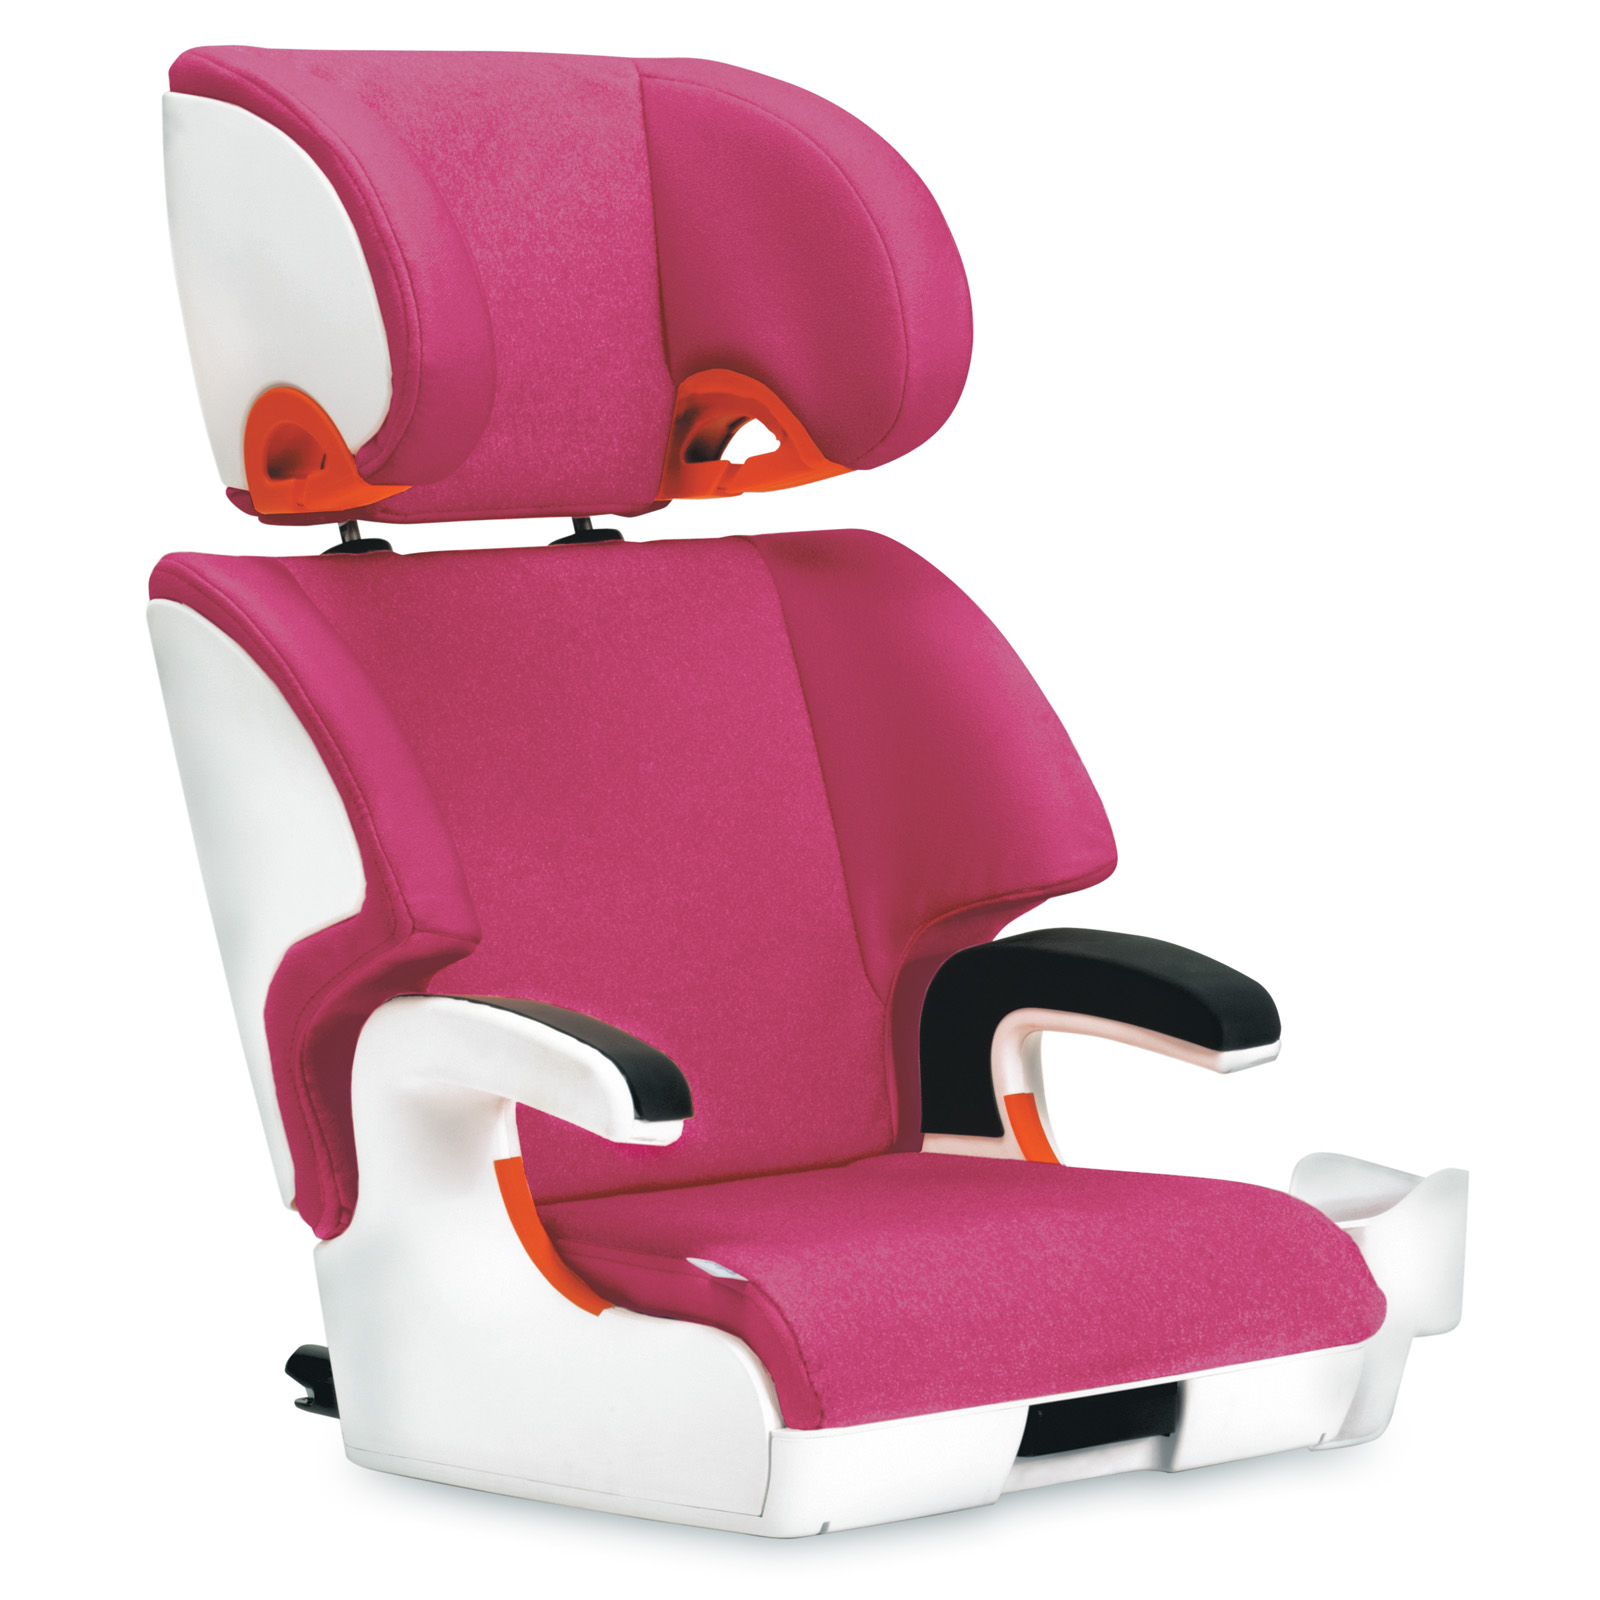 clek oobr booster car seat snowberry at hayneedle. Black Bedroom Furniture Sets. Home Design Ideas